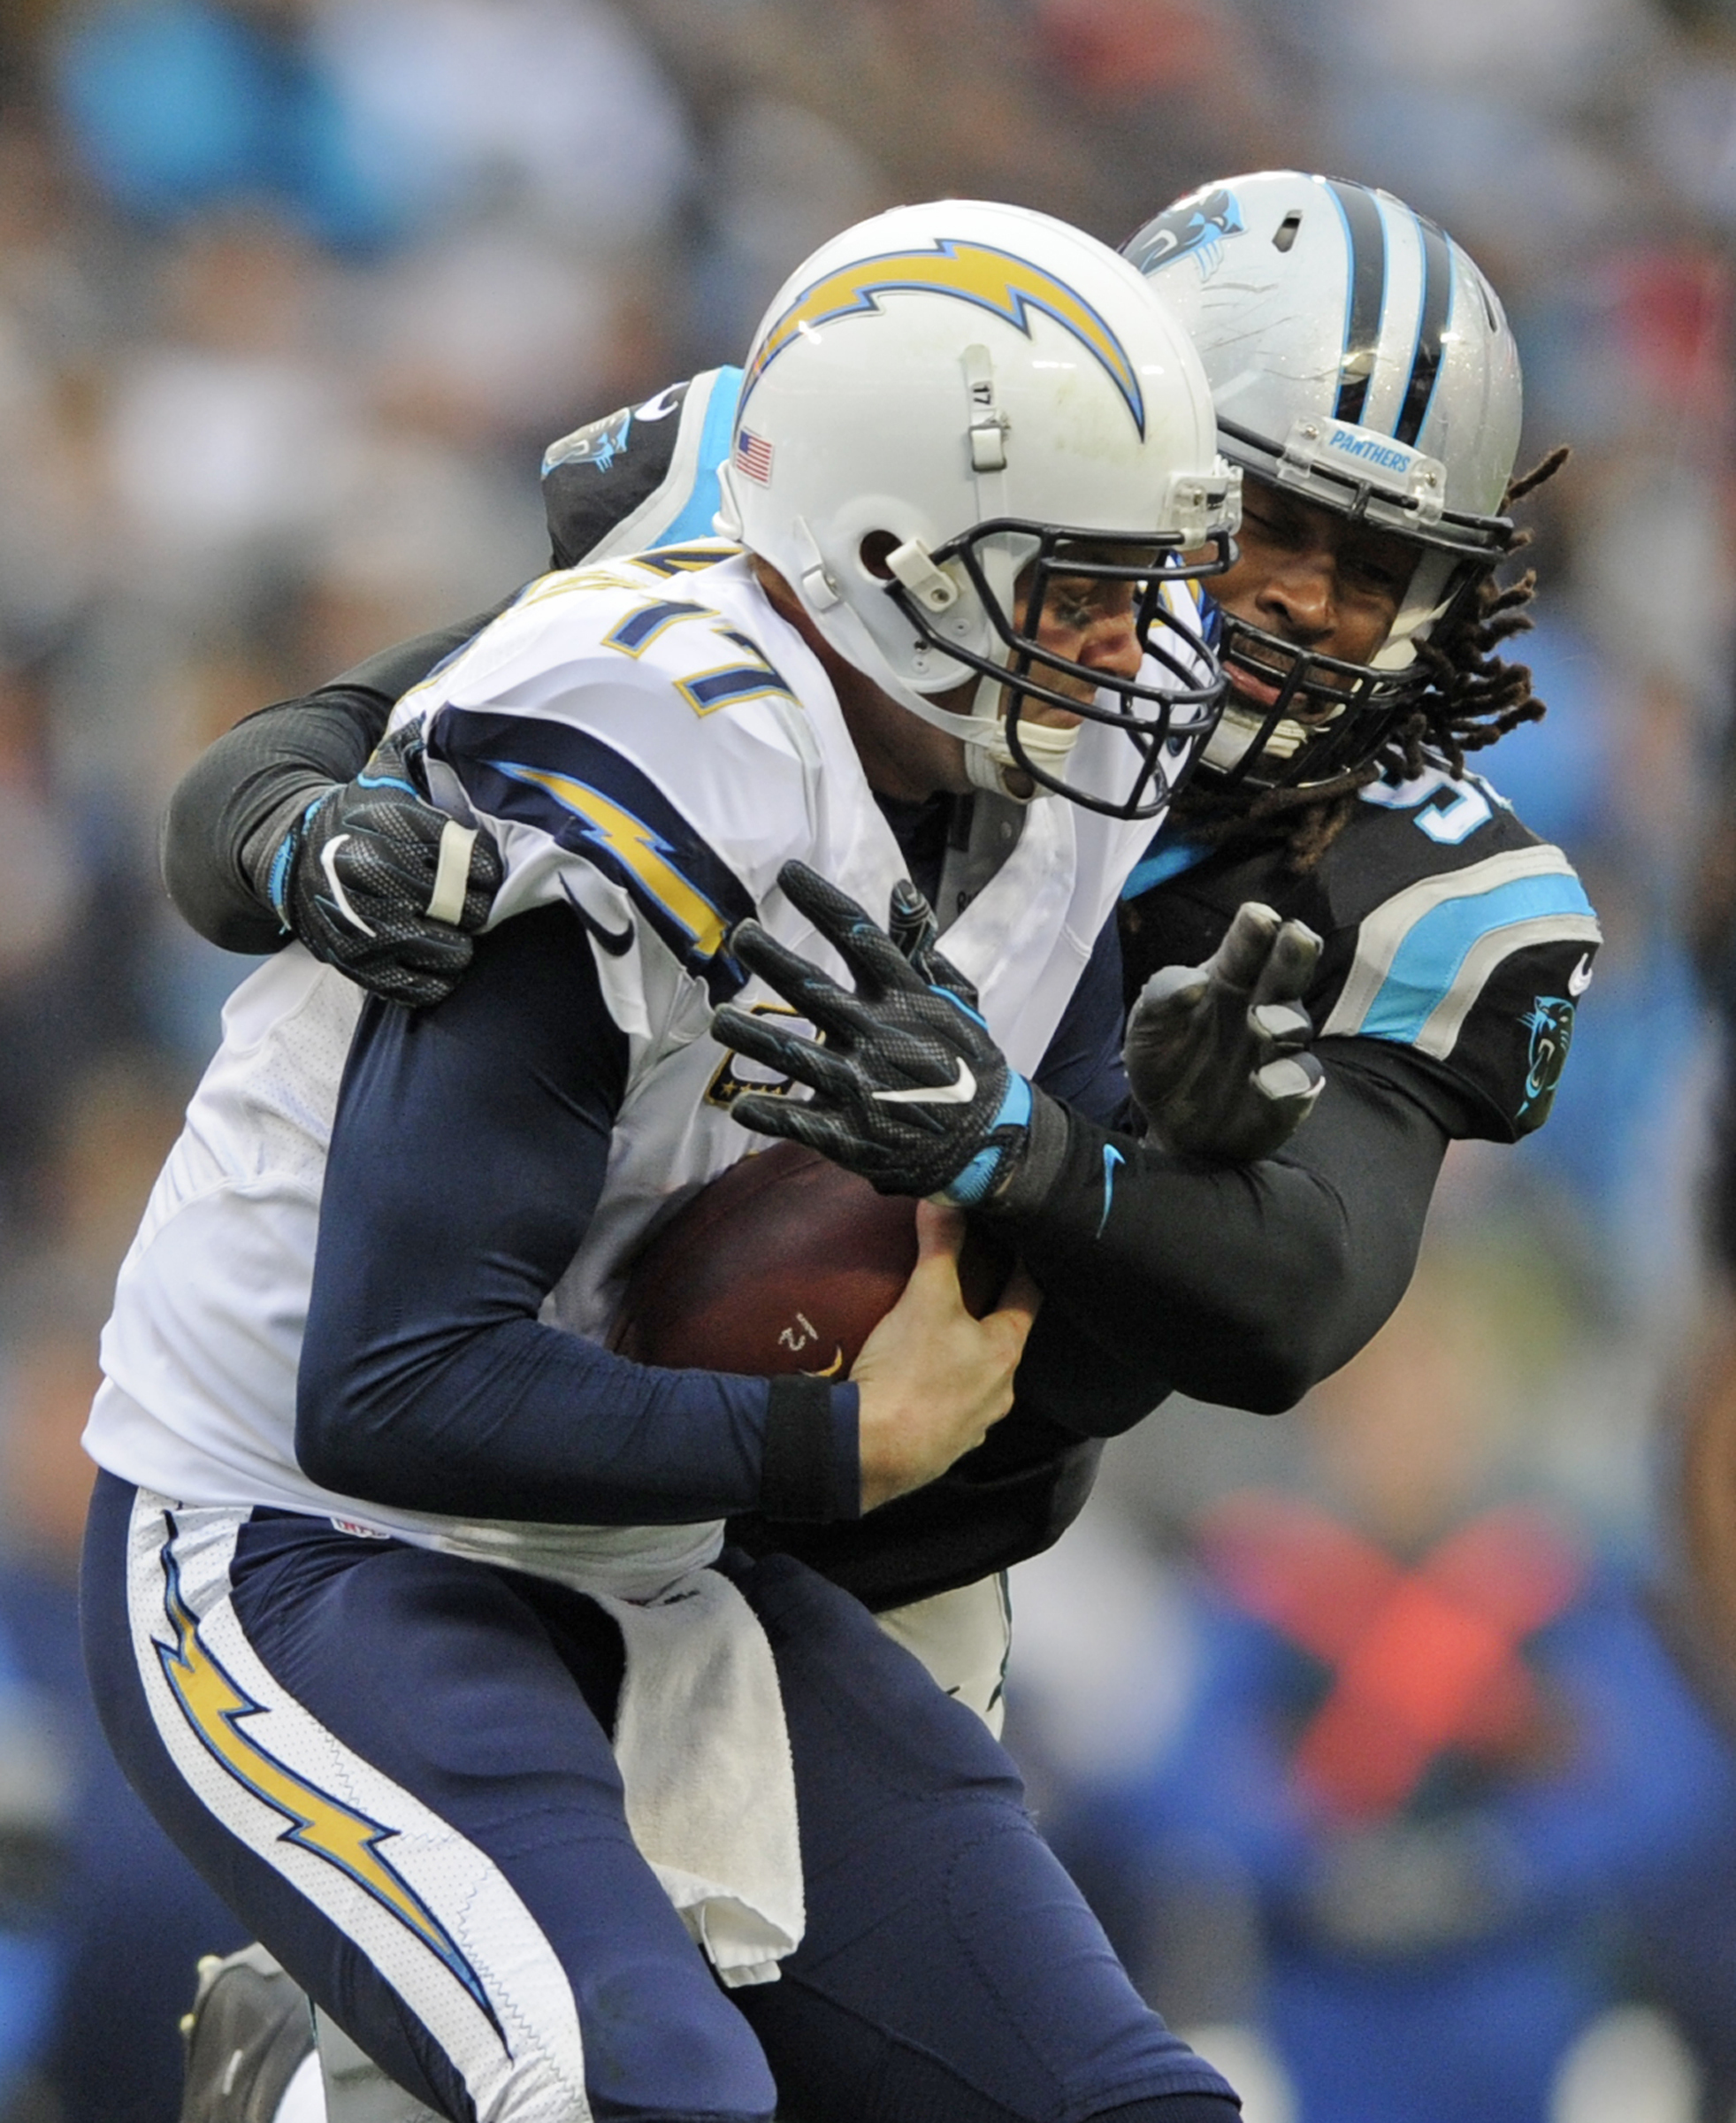 San Diego Chargers' Philip Rivers (17) is sacked by Carolina Panthers' Ryan Delaire (91) in the first half of an NFL football game in Charlotte, N.C., Sunday, Dec. 11, 2016. (AP Photo/Mike McCarn)